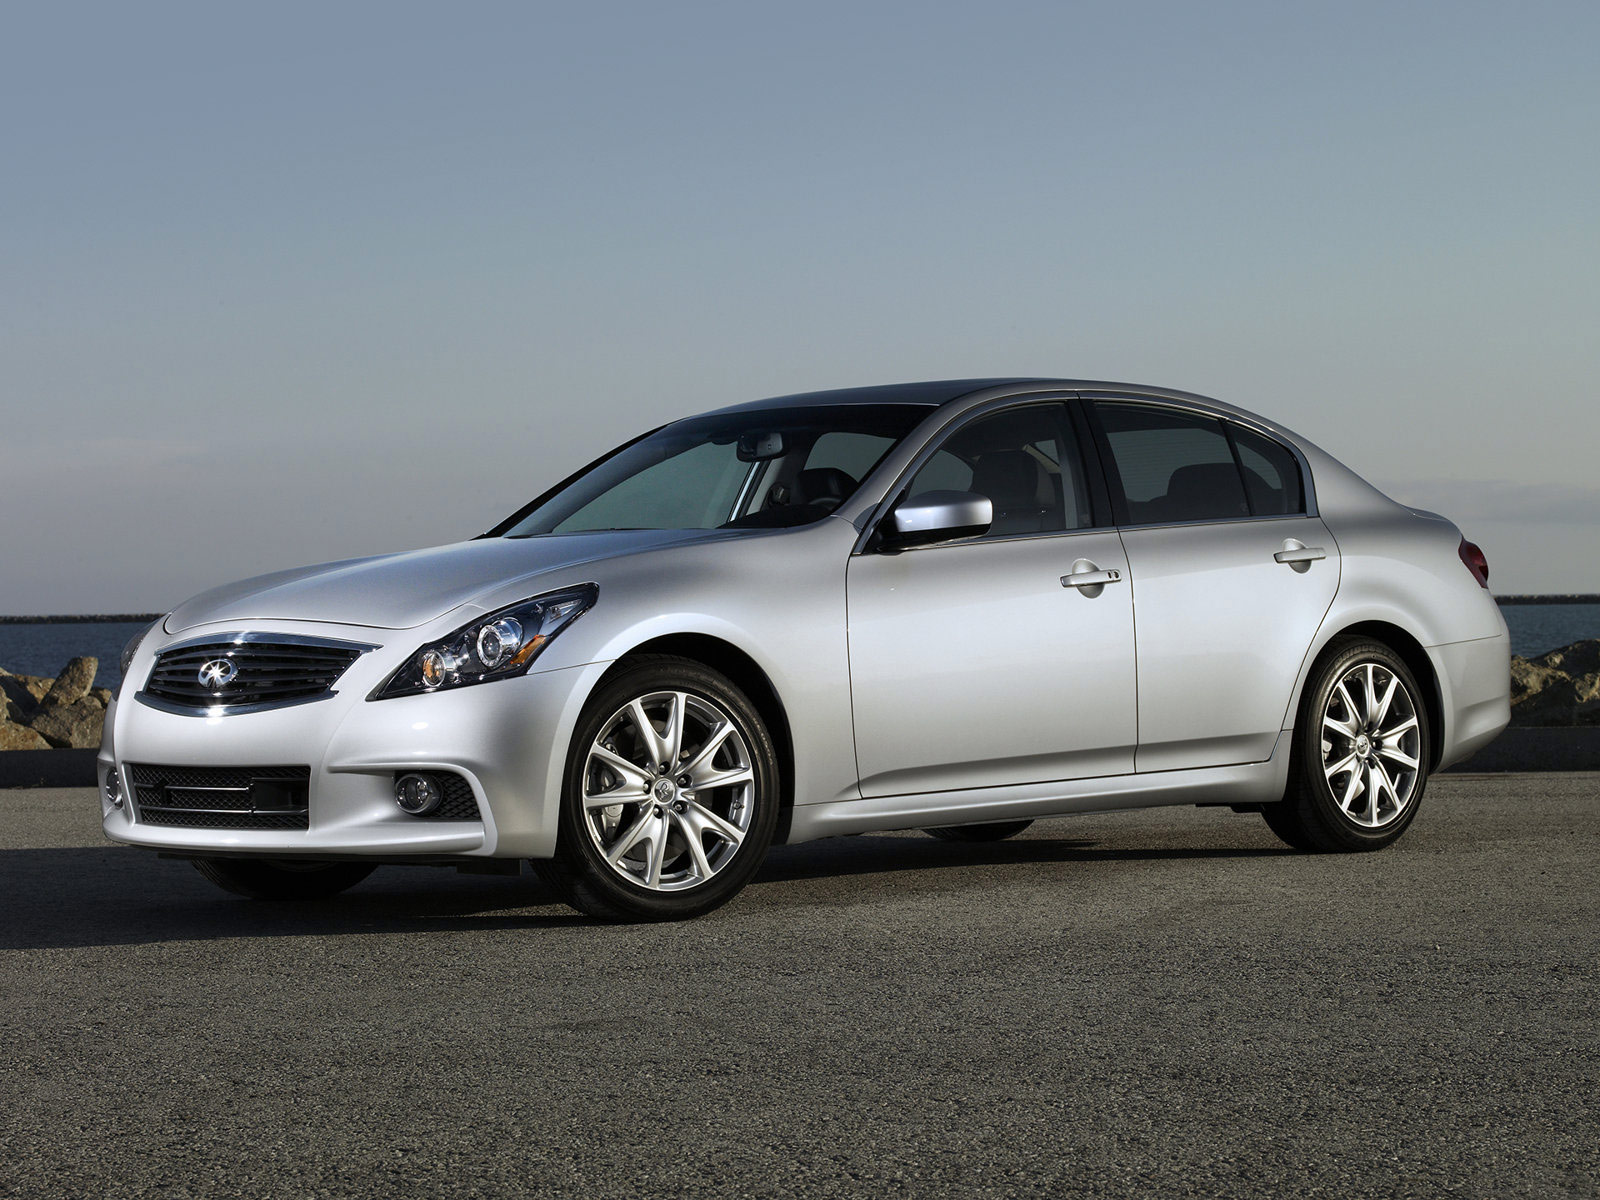 2010 infiniti g37 sedan car photos accident lawyers info. Black Bedroom Furniture Sets. Home Design Ideas